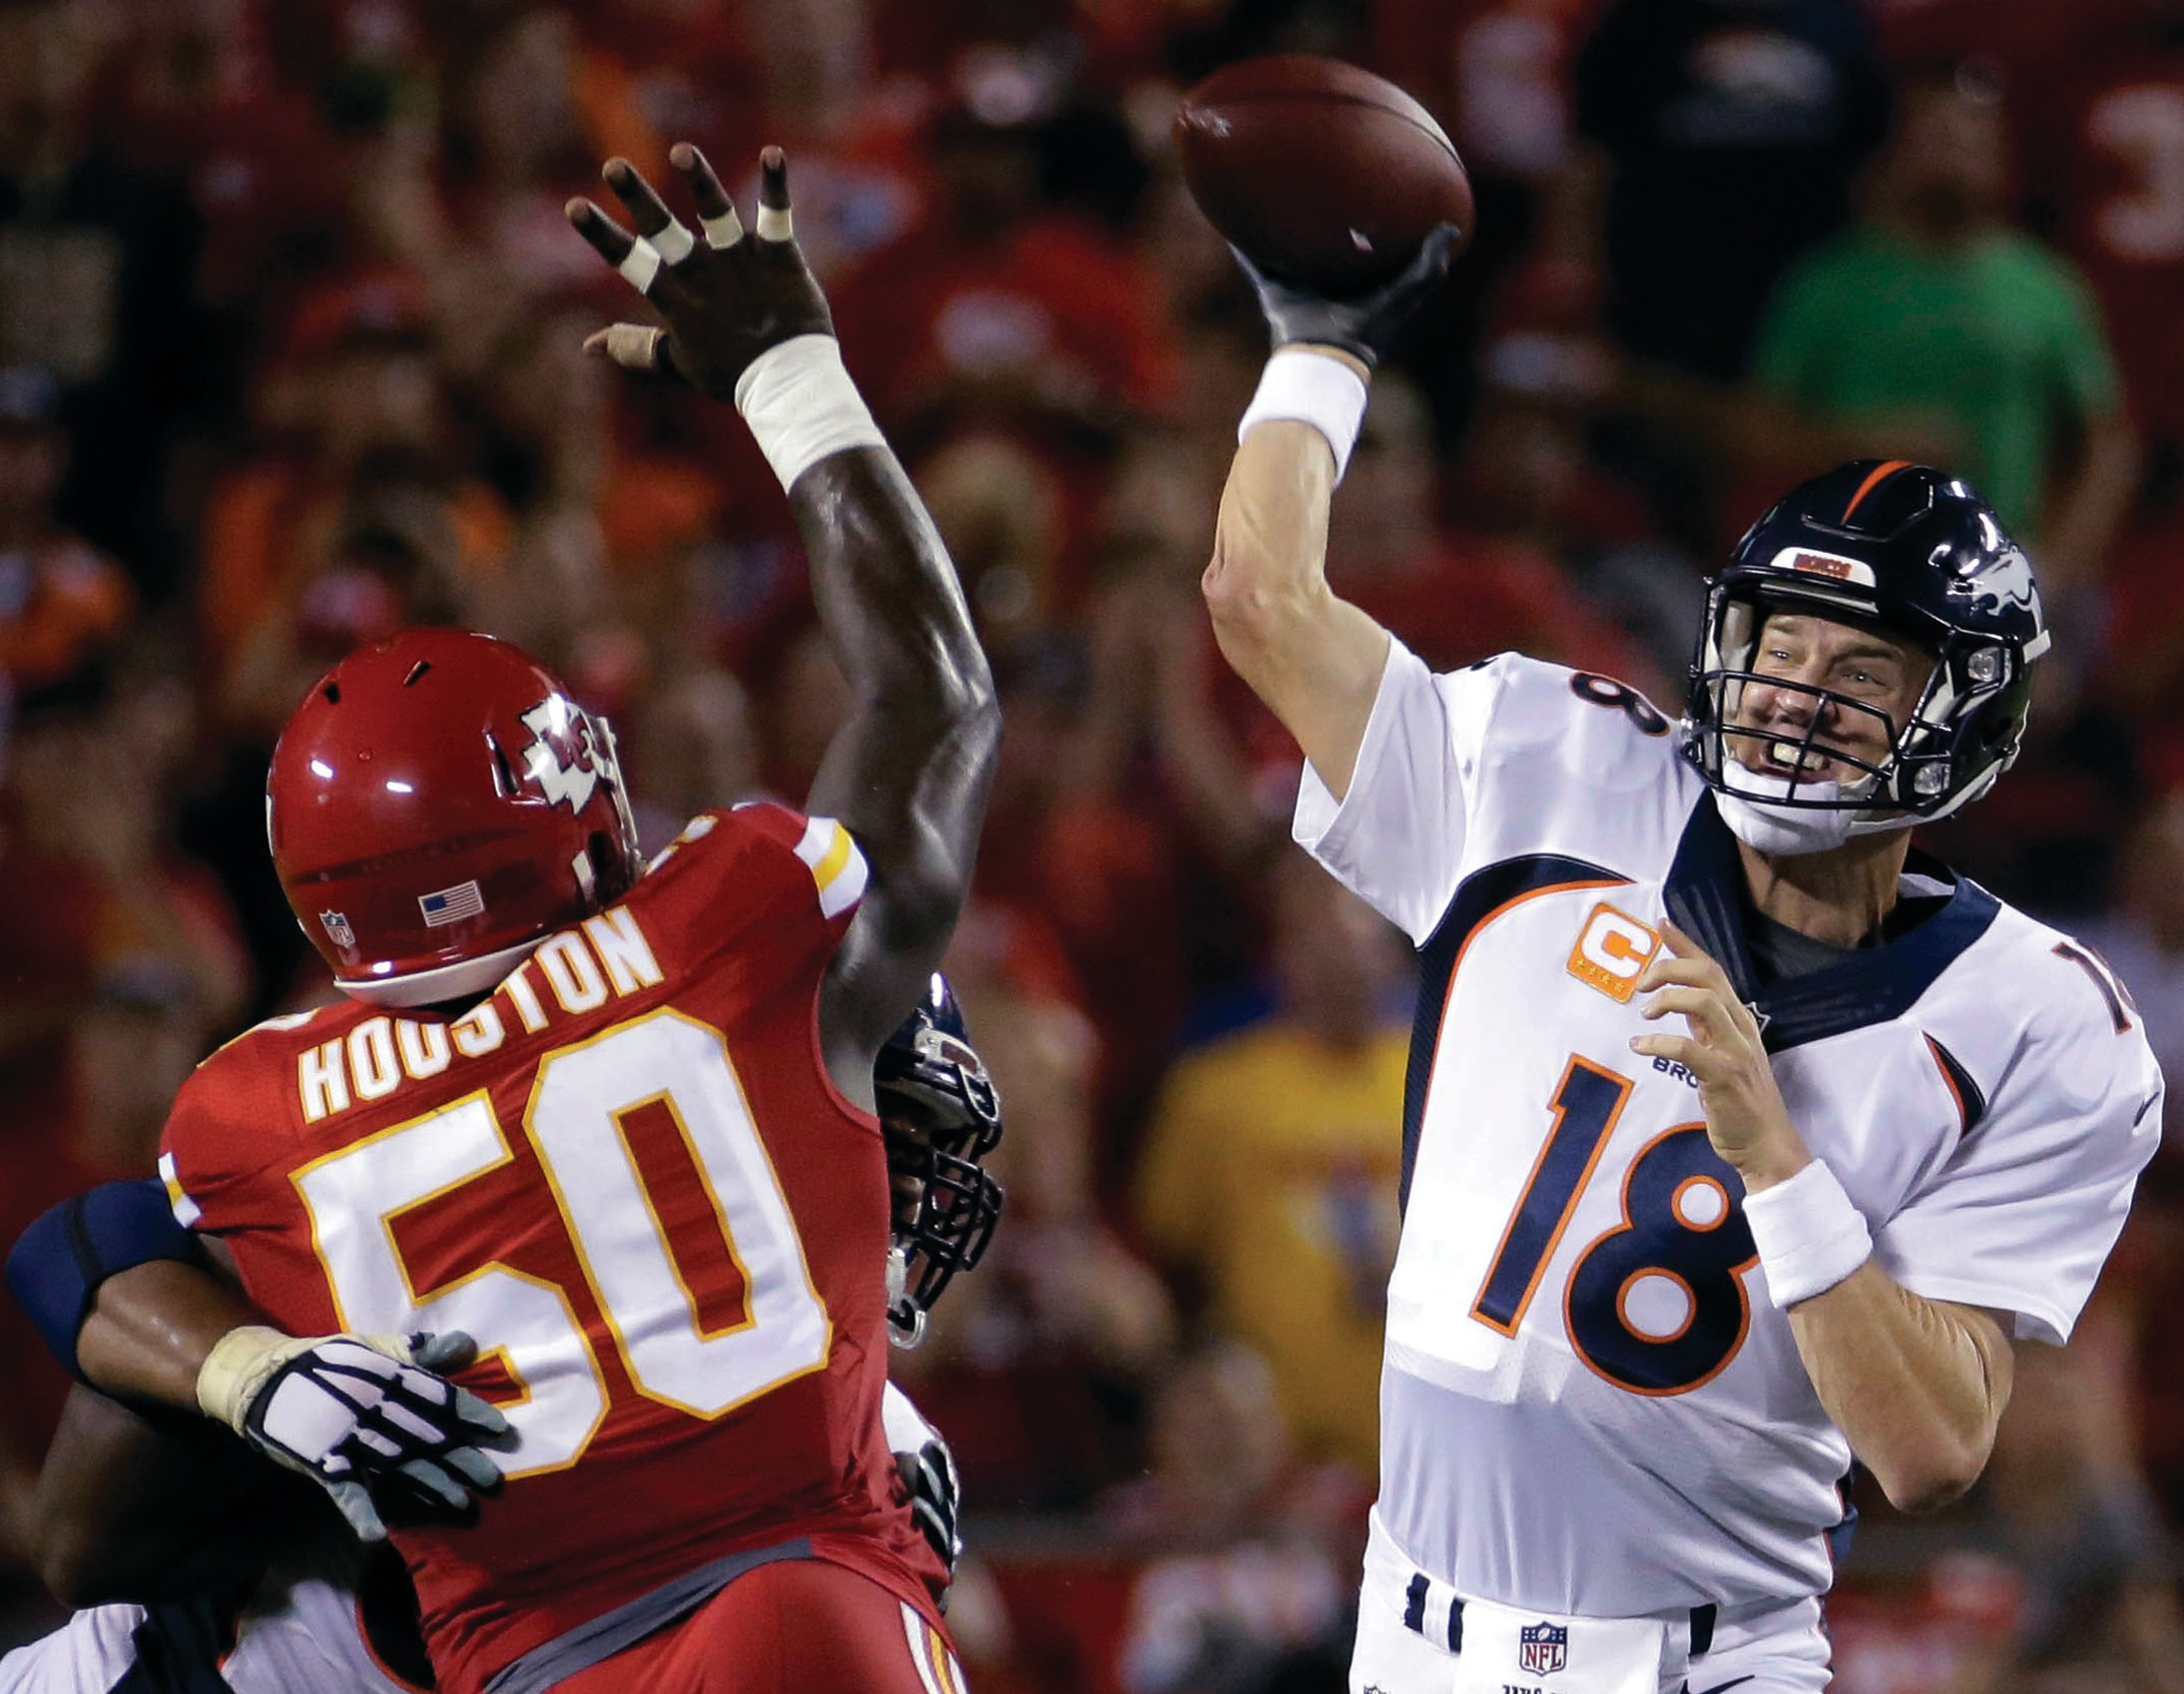 Denver Broncos quarterback Peyton Manning (18) throws under pressure from Kansas City Chiefs linebacker Justin Houston (50) during the second half of an NFL football game in Kansas City, Mo. Thursday.